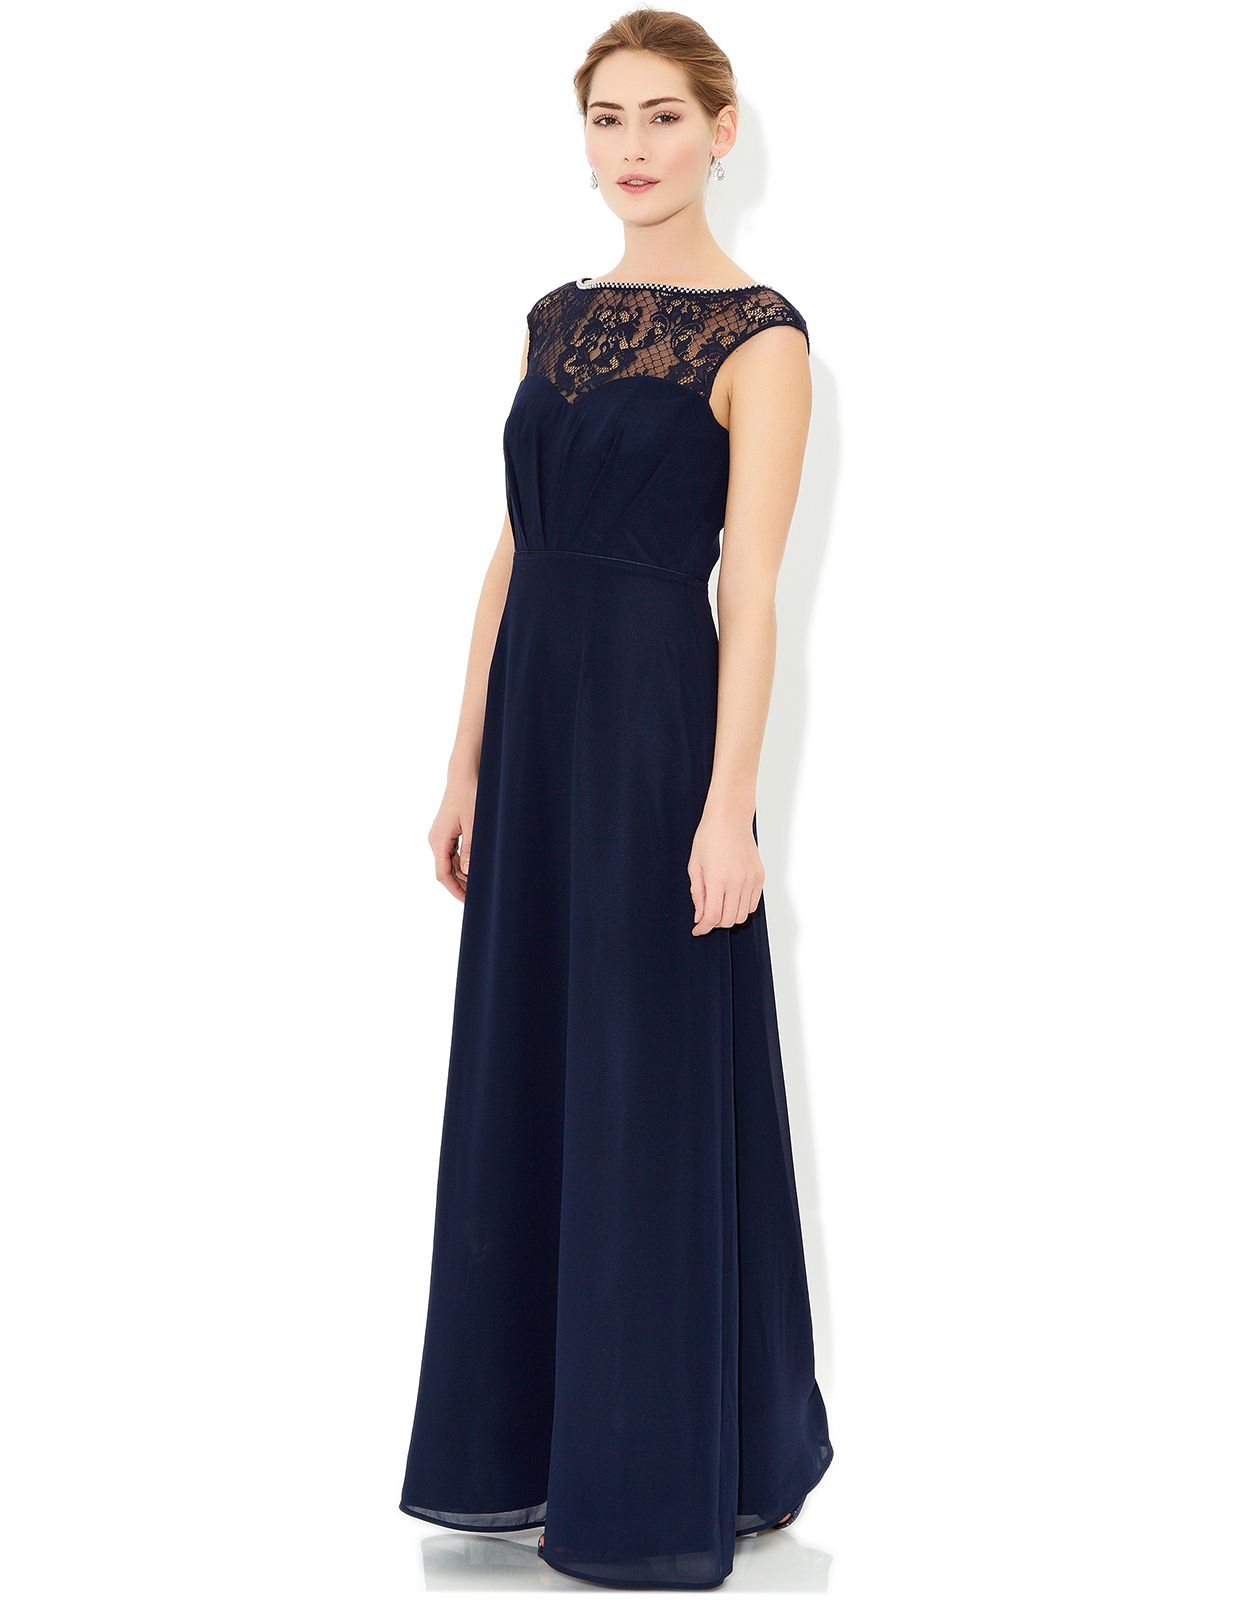 Buy bridesmaid dresses maisie maxi dress blue navy for Navy blue maxi dress for wedding